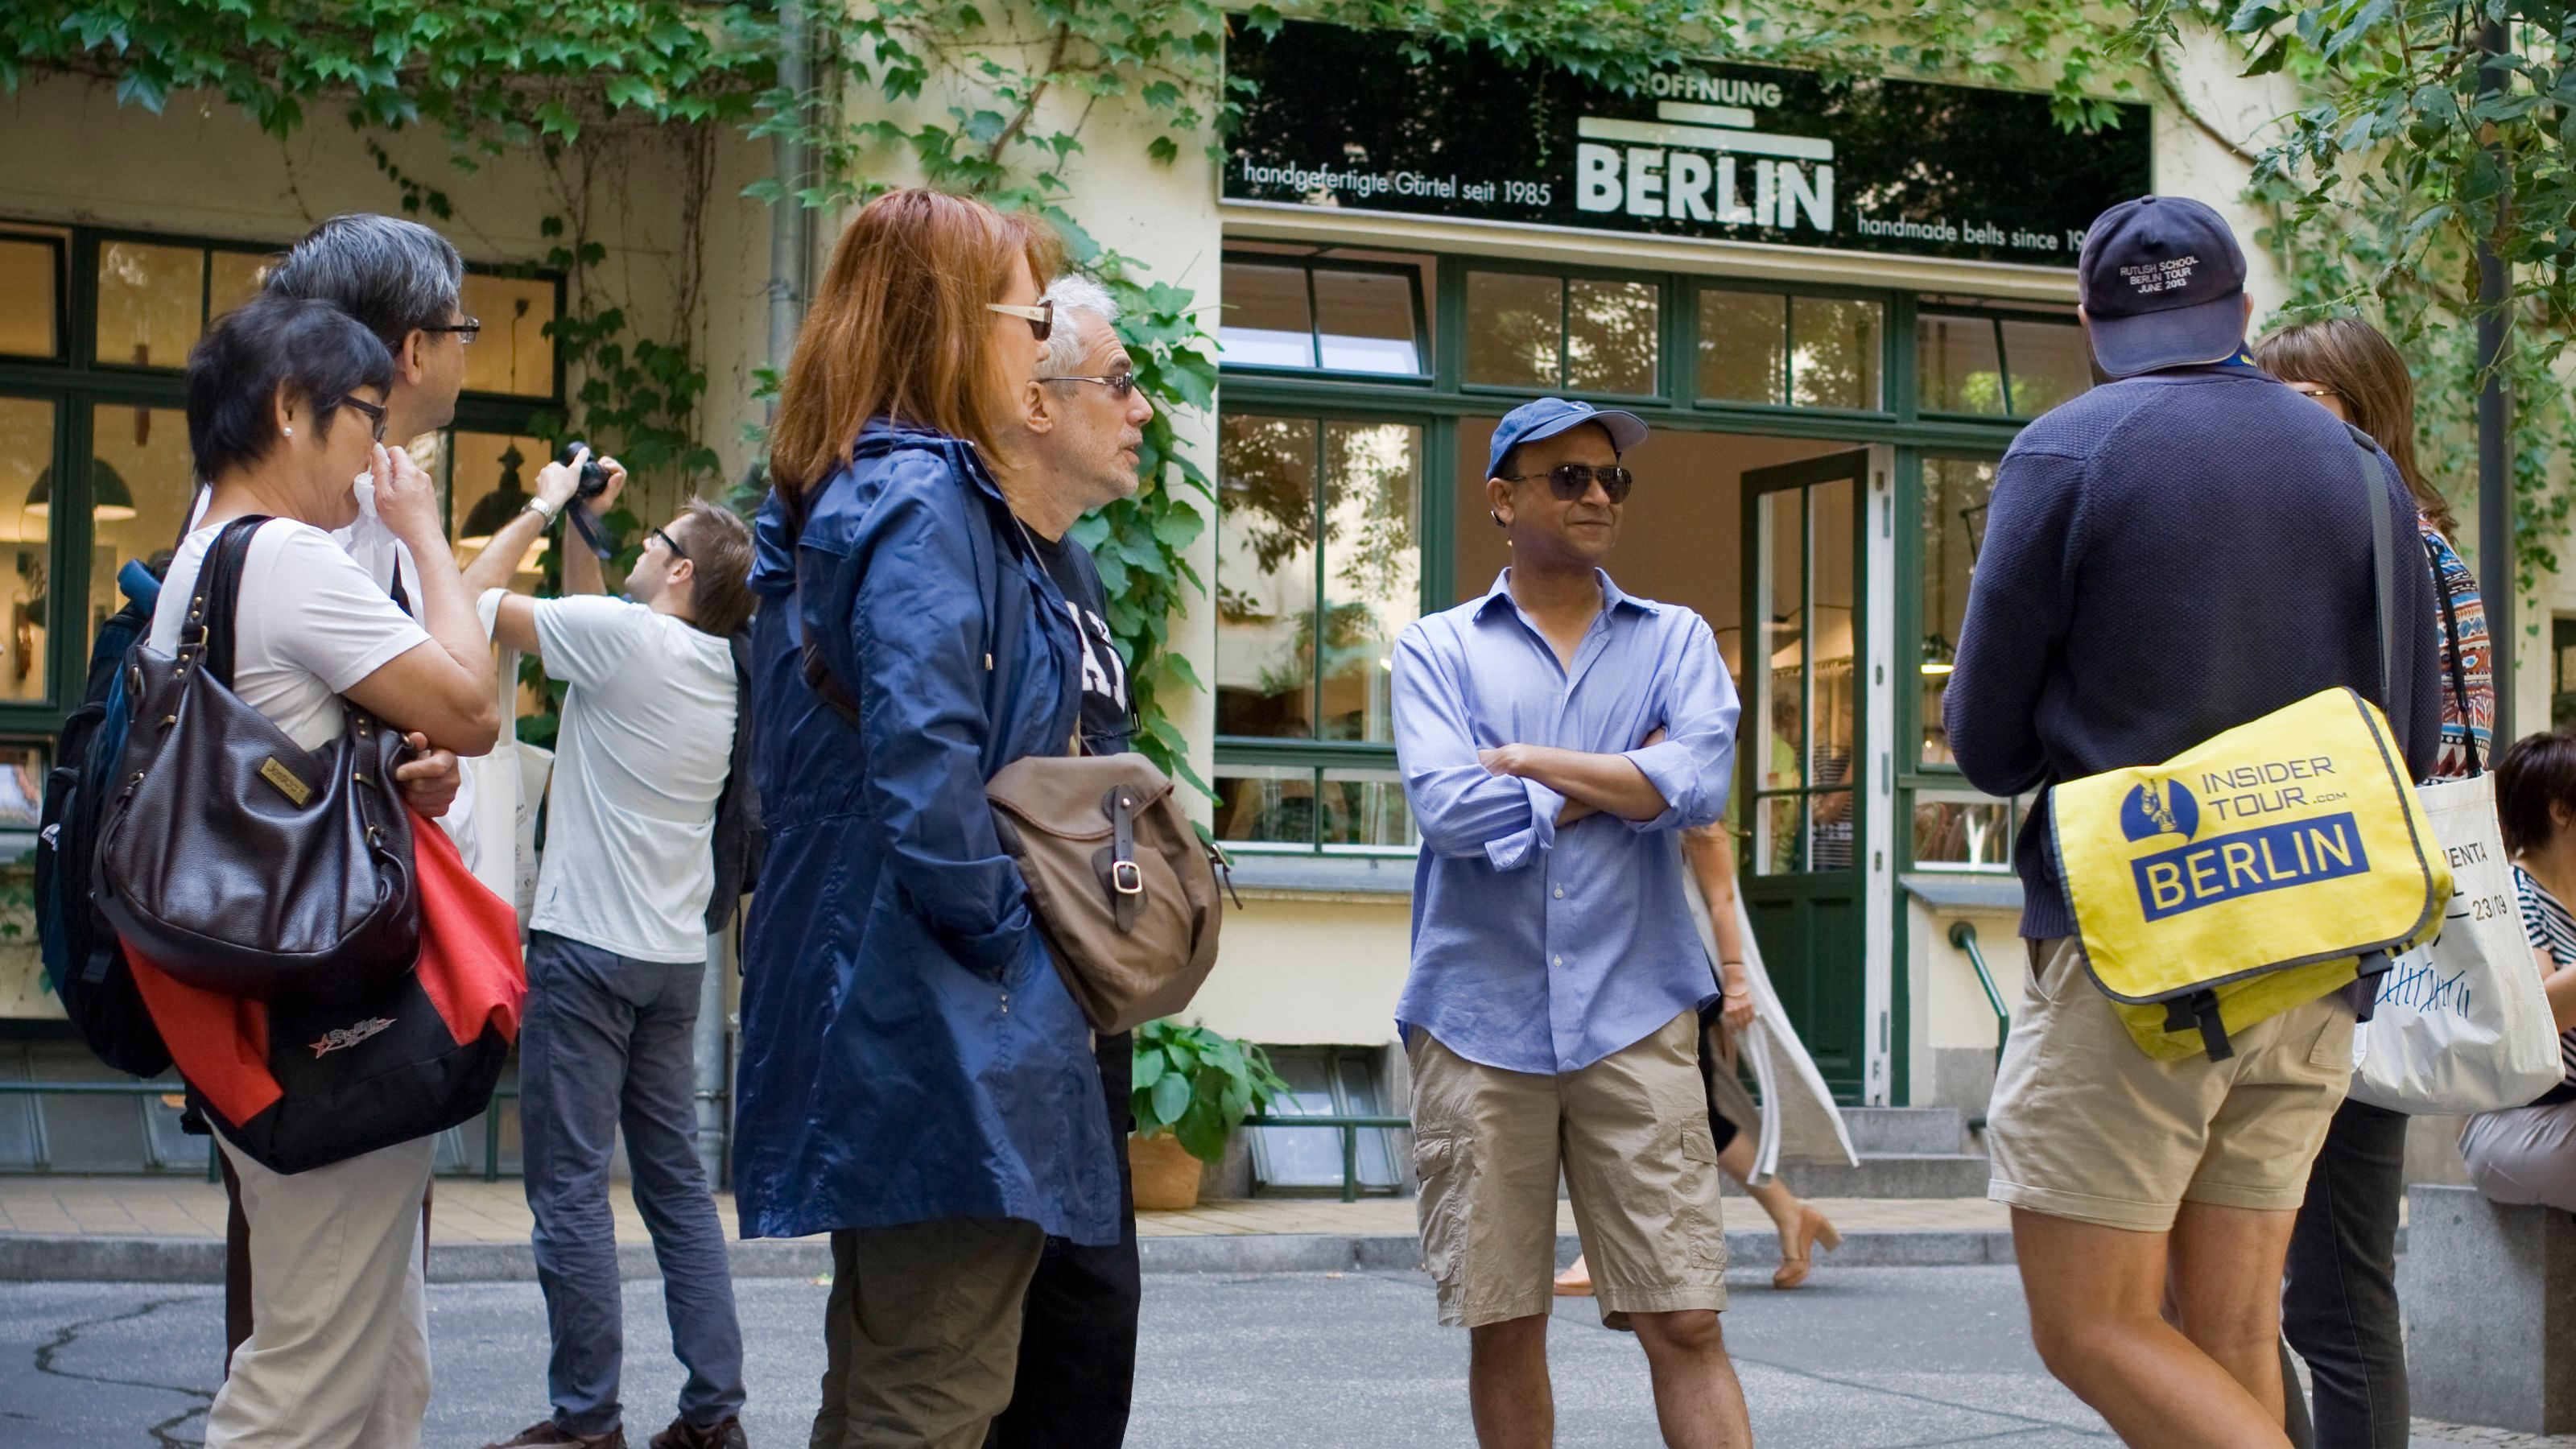 Tour group taking pictures in Berlin